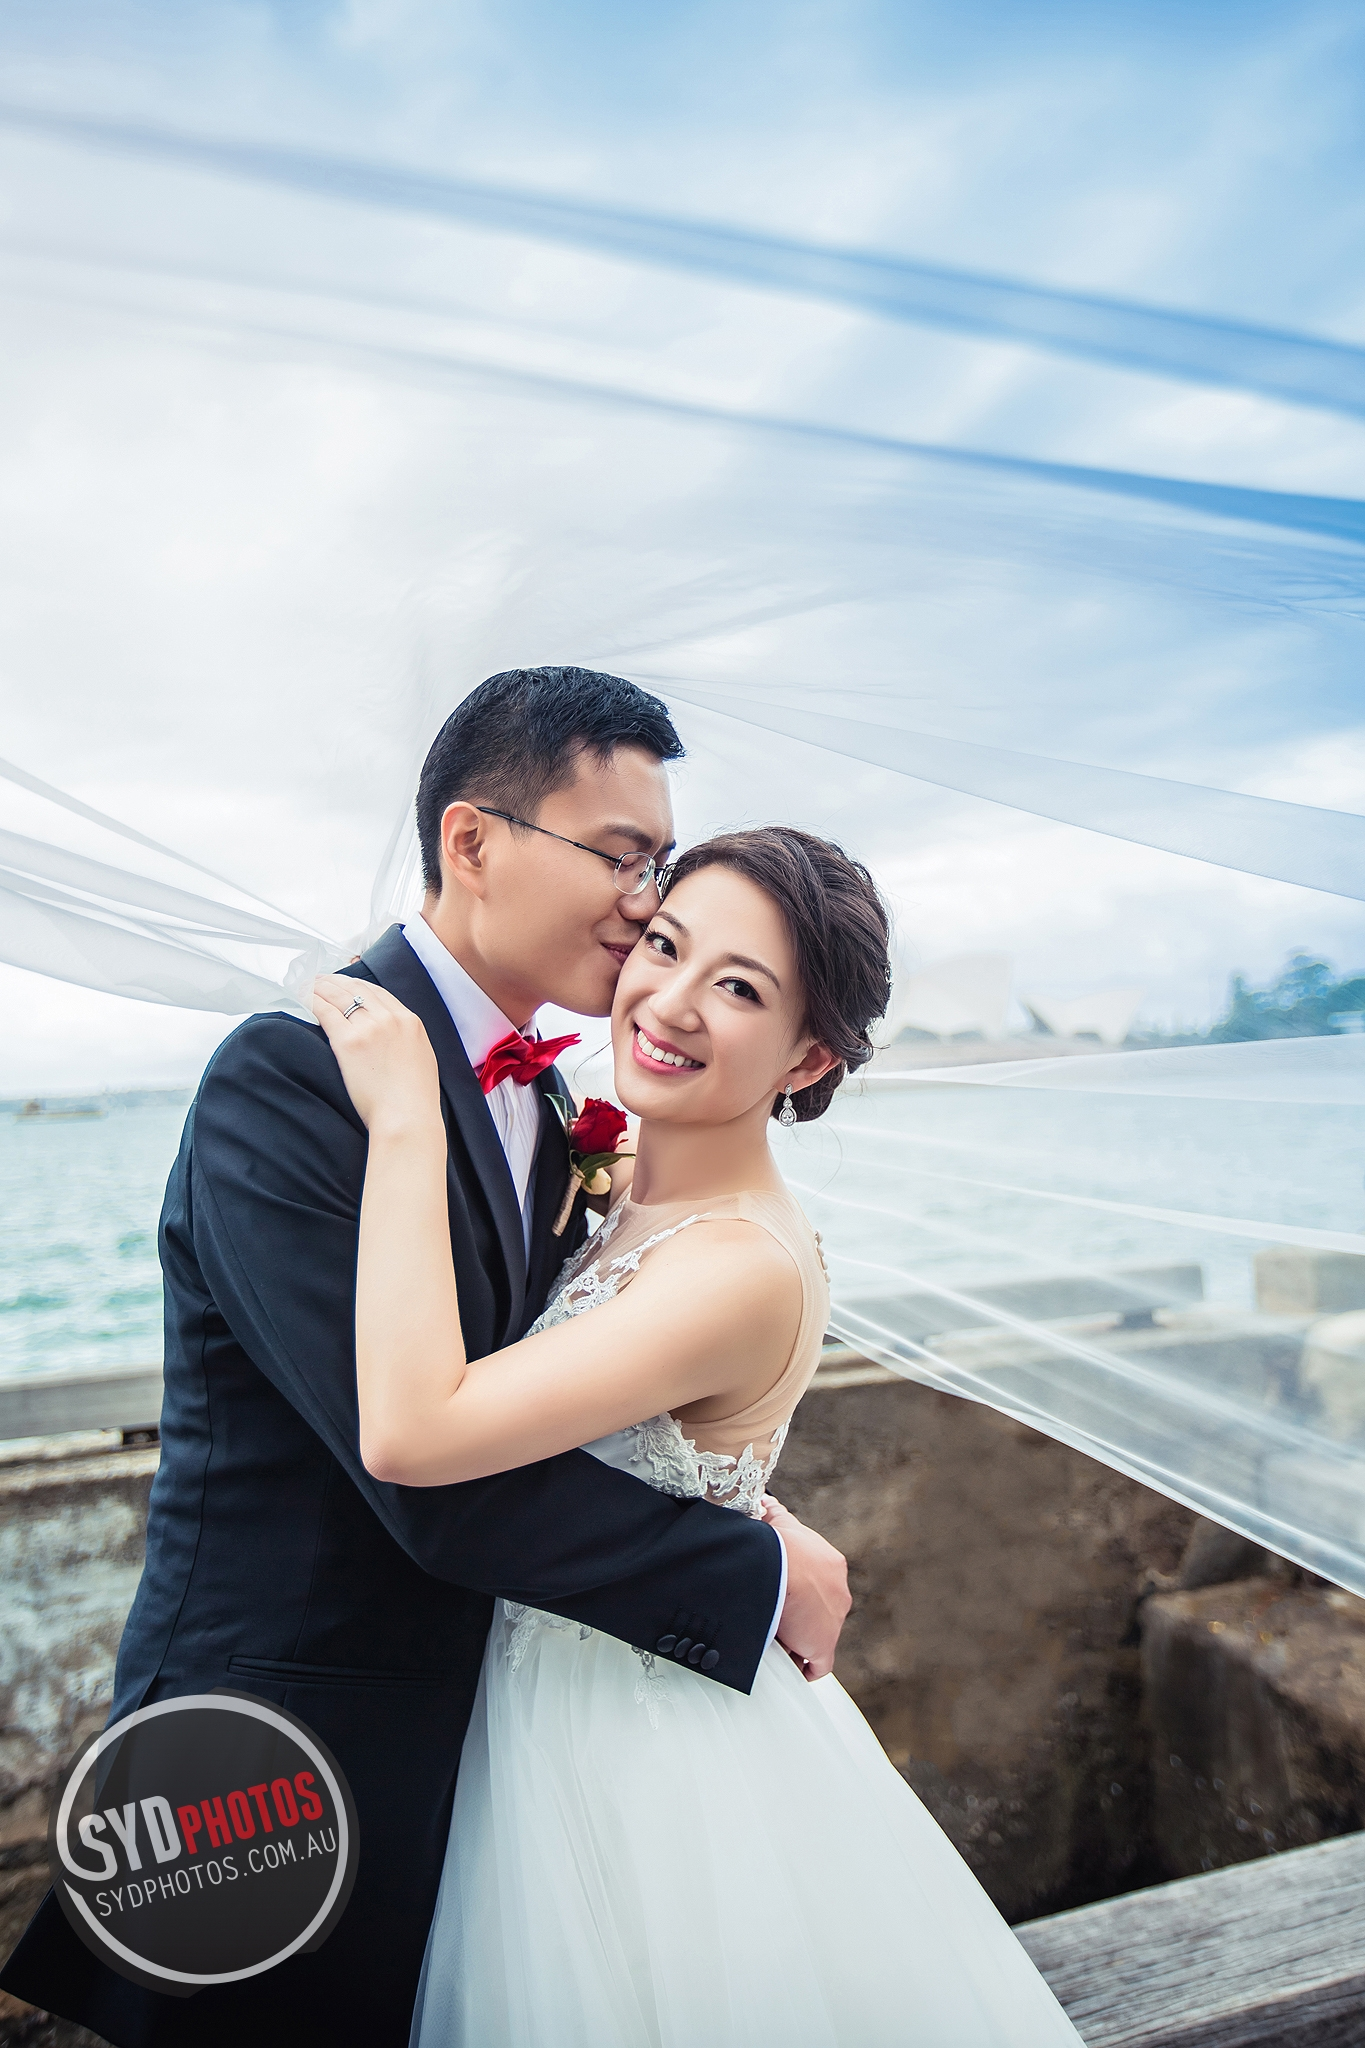 id-87786-20171118-955ID-87786-20171118-955.jpg, By Photographer Sydphotos.wedding, Created on 12 Aug 2018, SYDPHOTOS Photography all rights reserved.